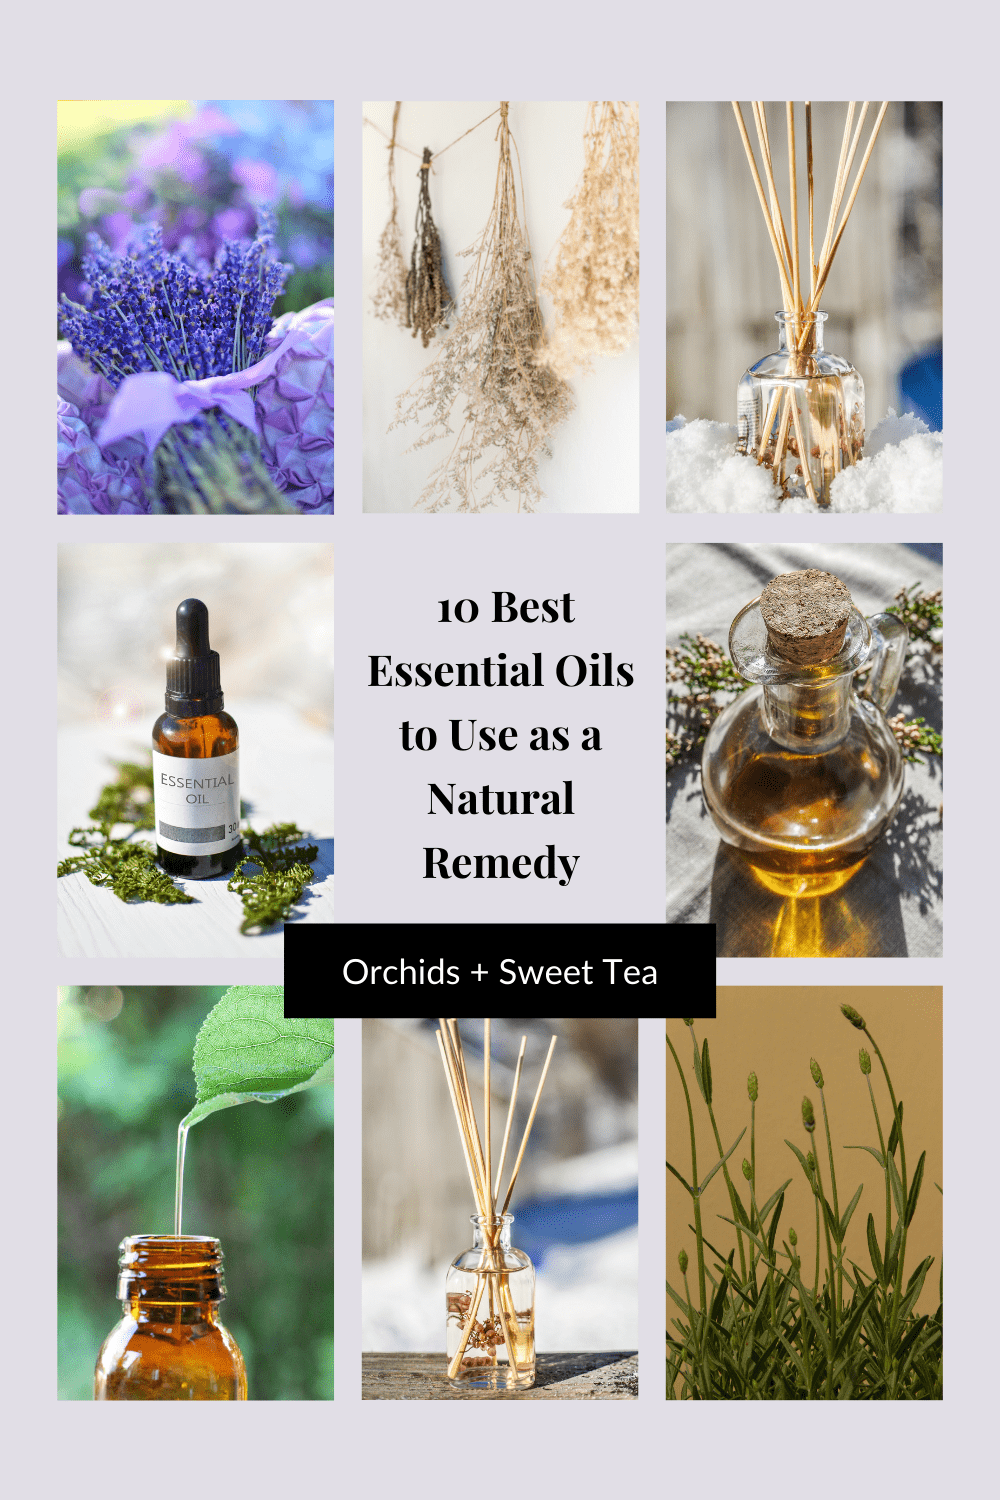 10 Best Essential Oils to Use as a Natural Remedy